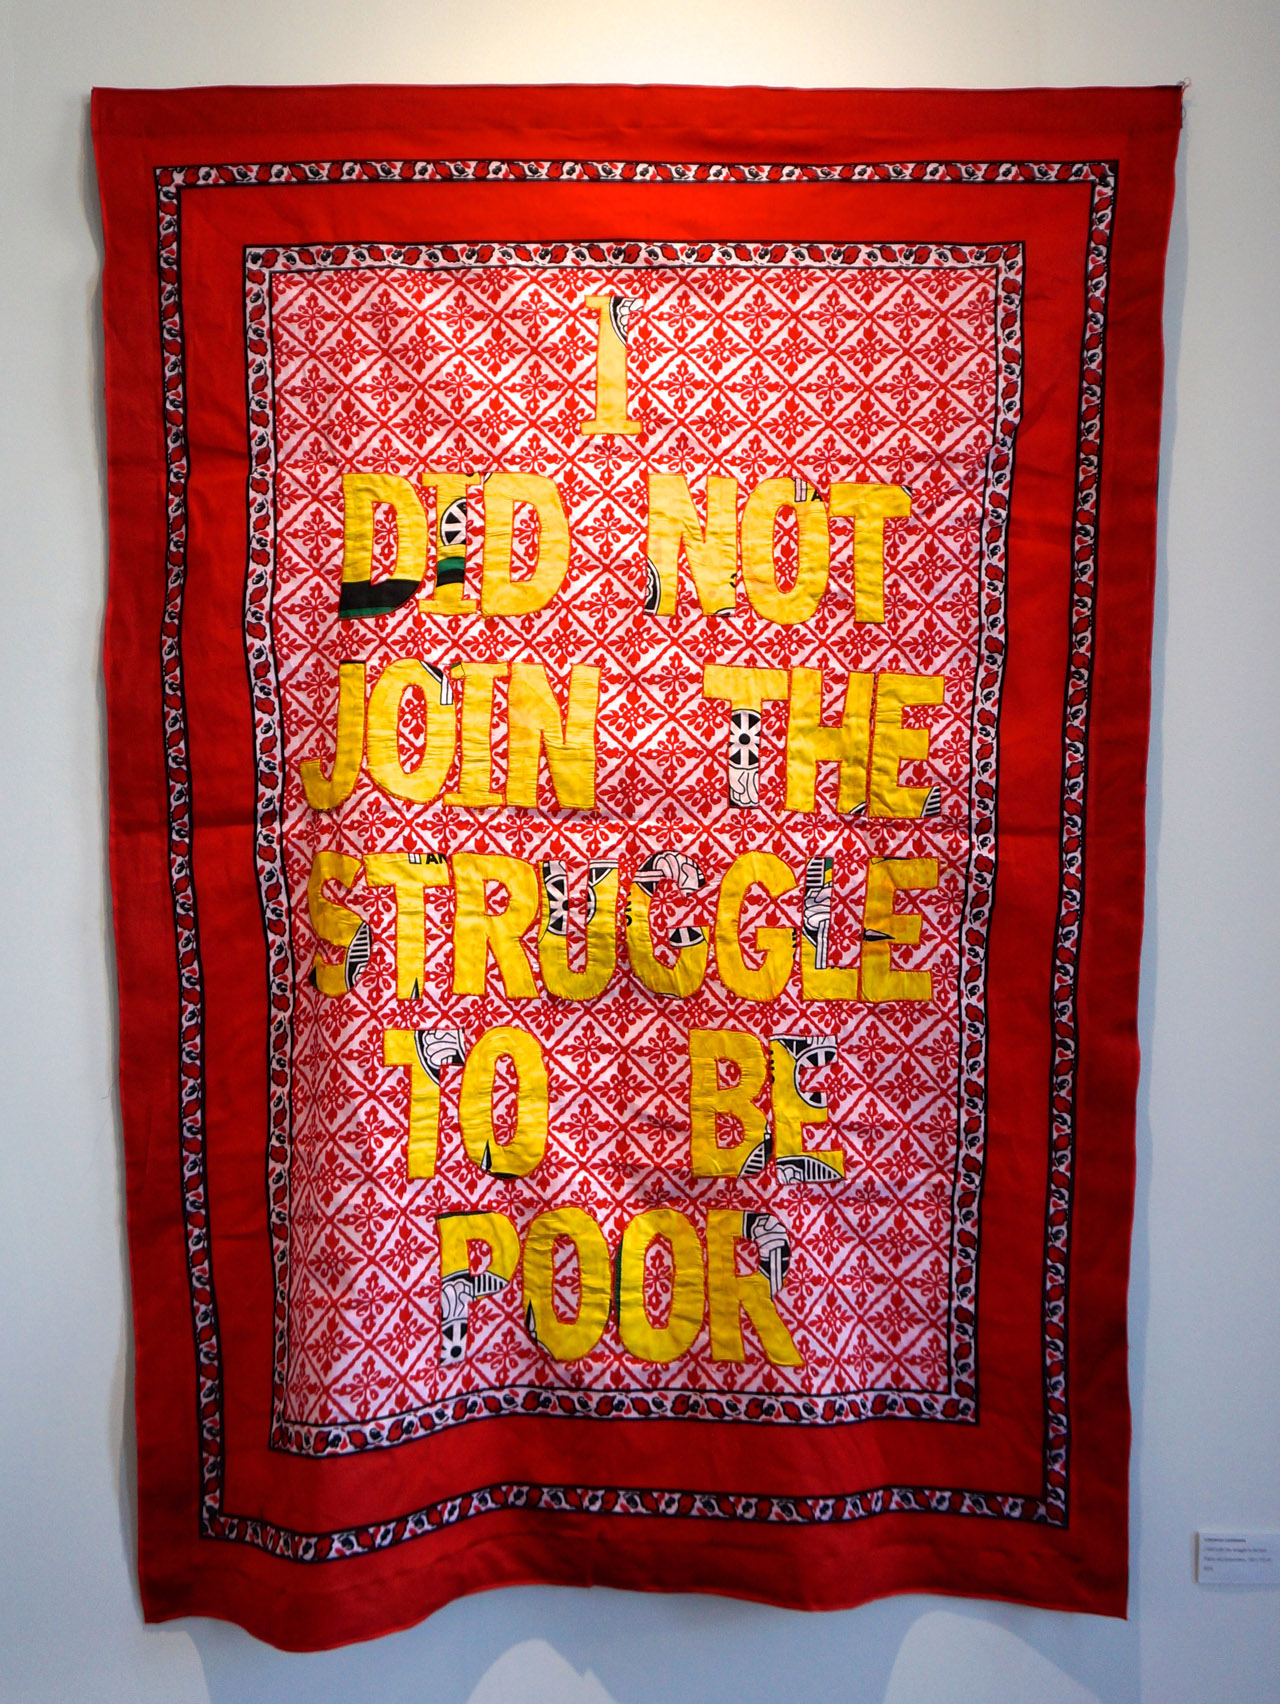 "Lawrence Lemaoana, ""I didn't join the struggle to be poor"" (2015), fabric and embroidery, 155 x 110 cm, at Afronova's booth"